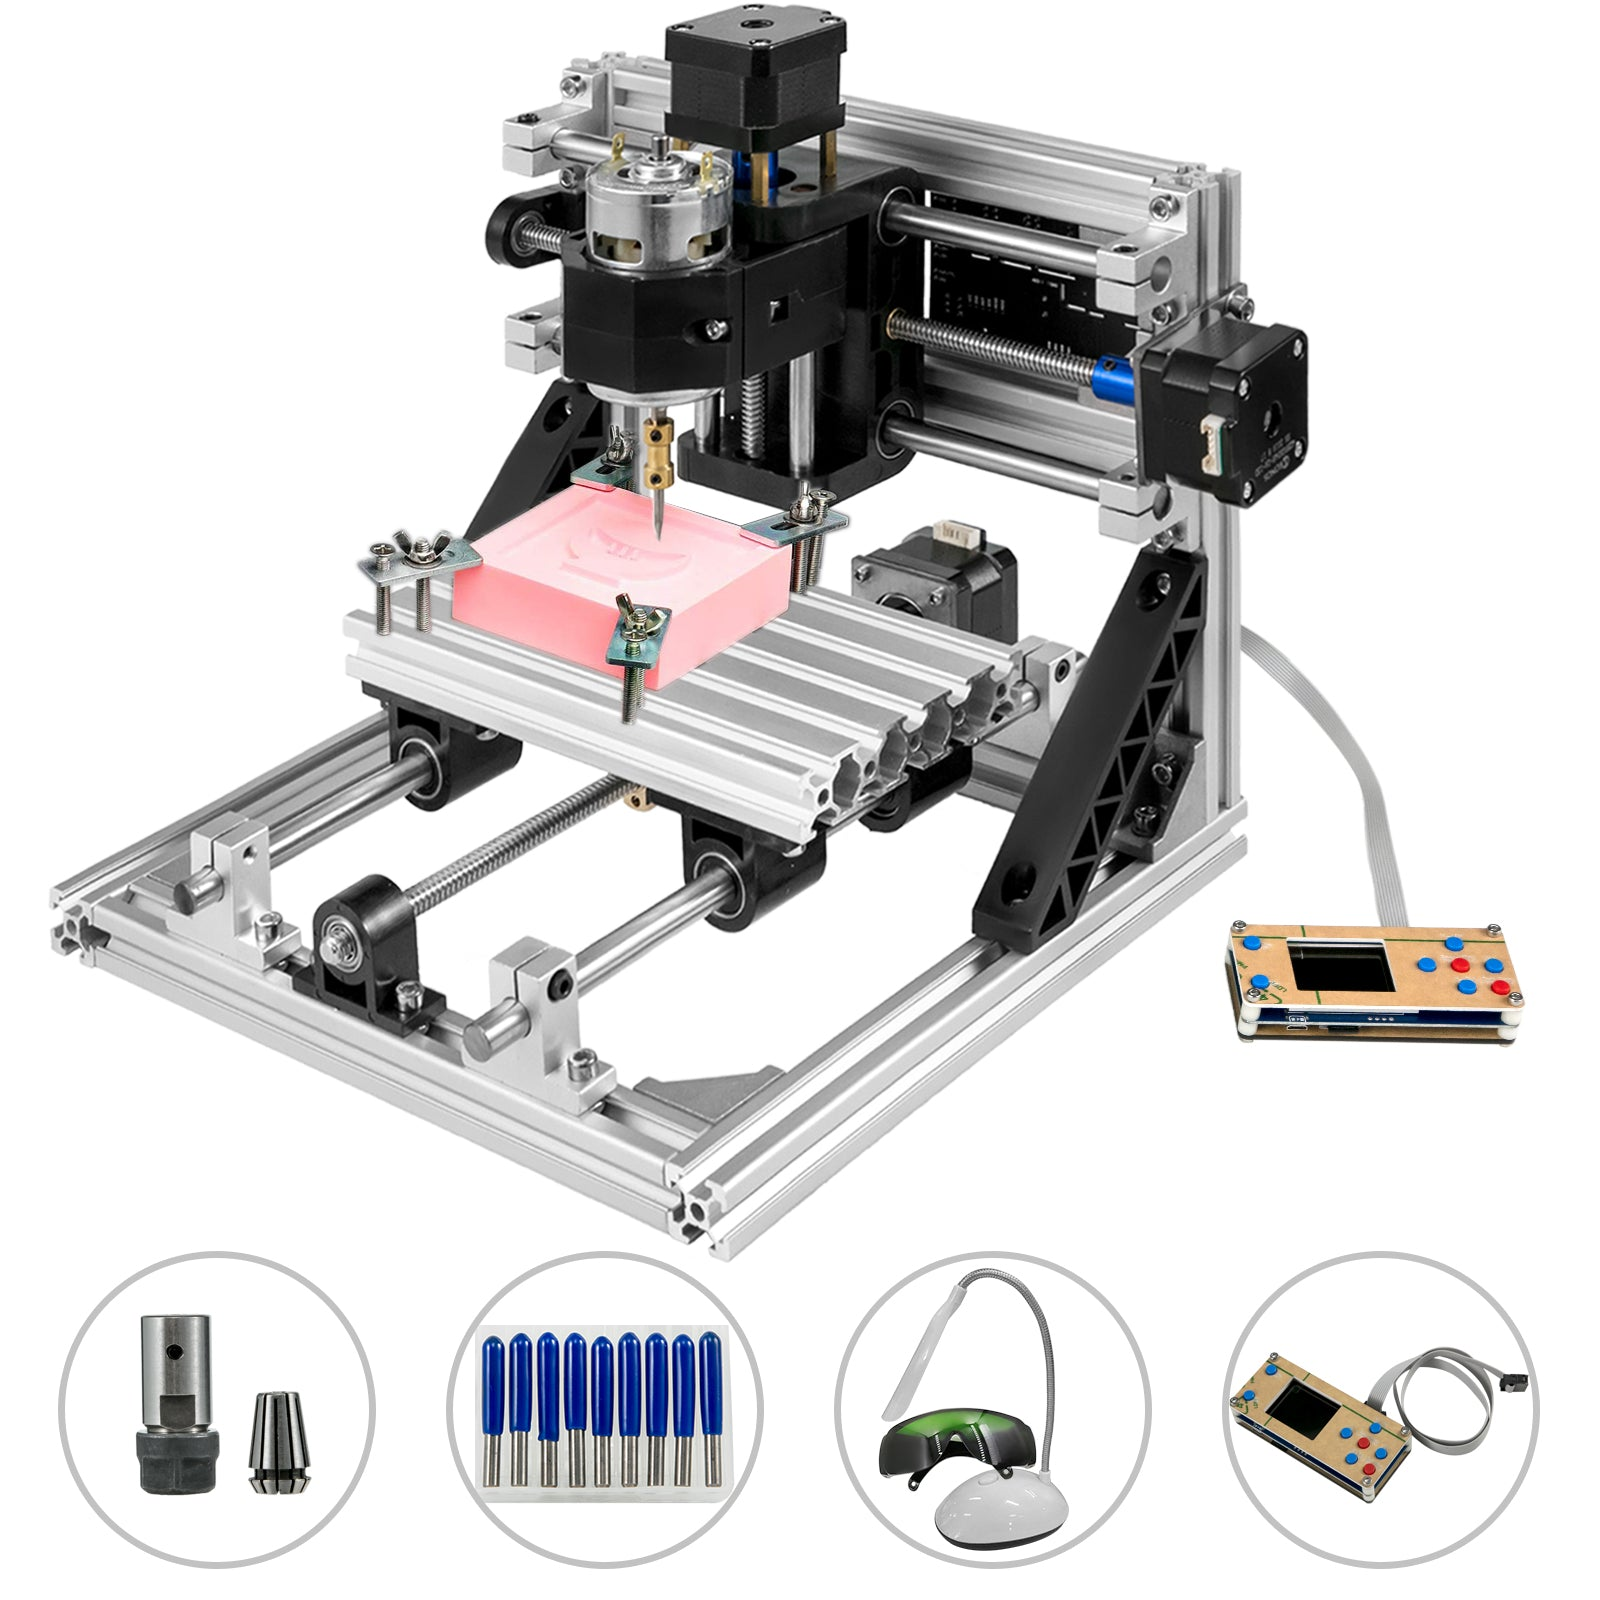 3 Axis Cnc Router 1610 With Offline Controller Engraver Machine Wood Plastic Pvc